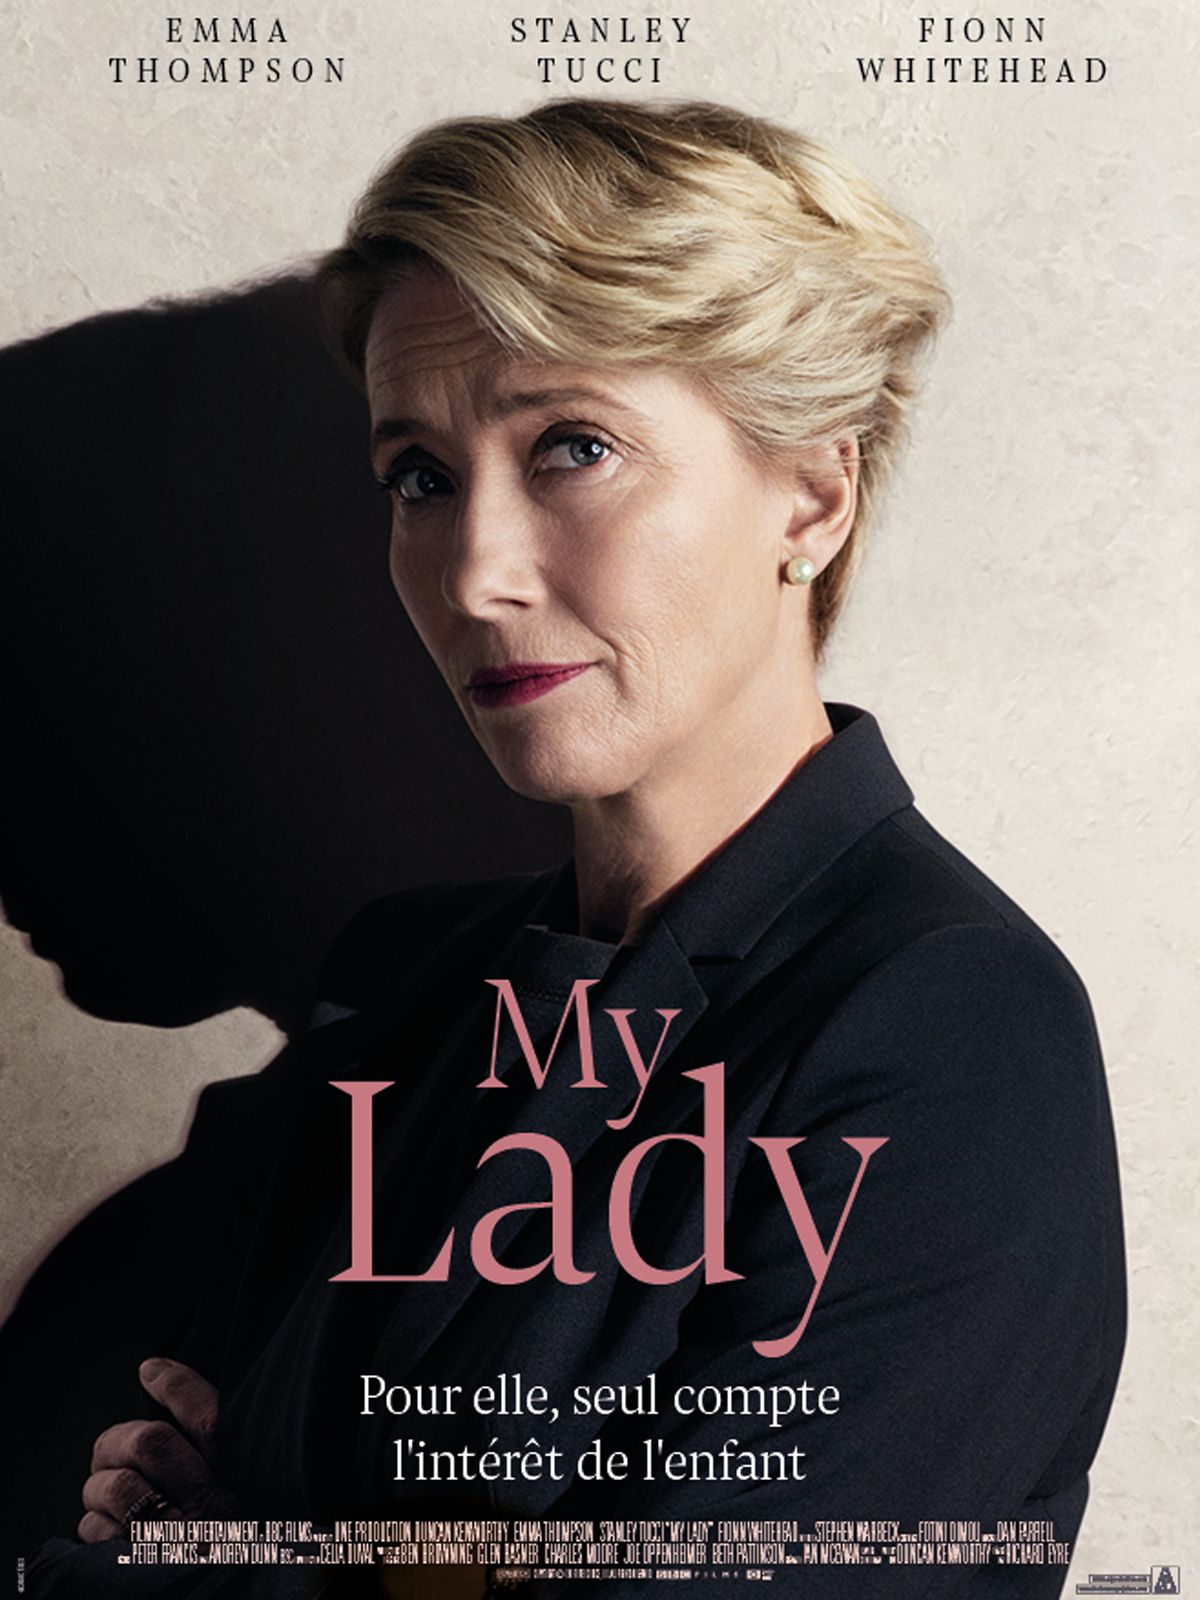 My Lady - Film (2018)